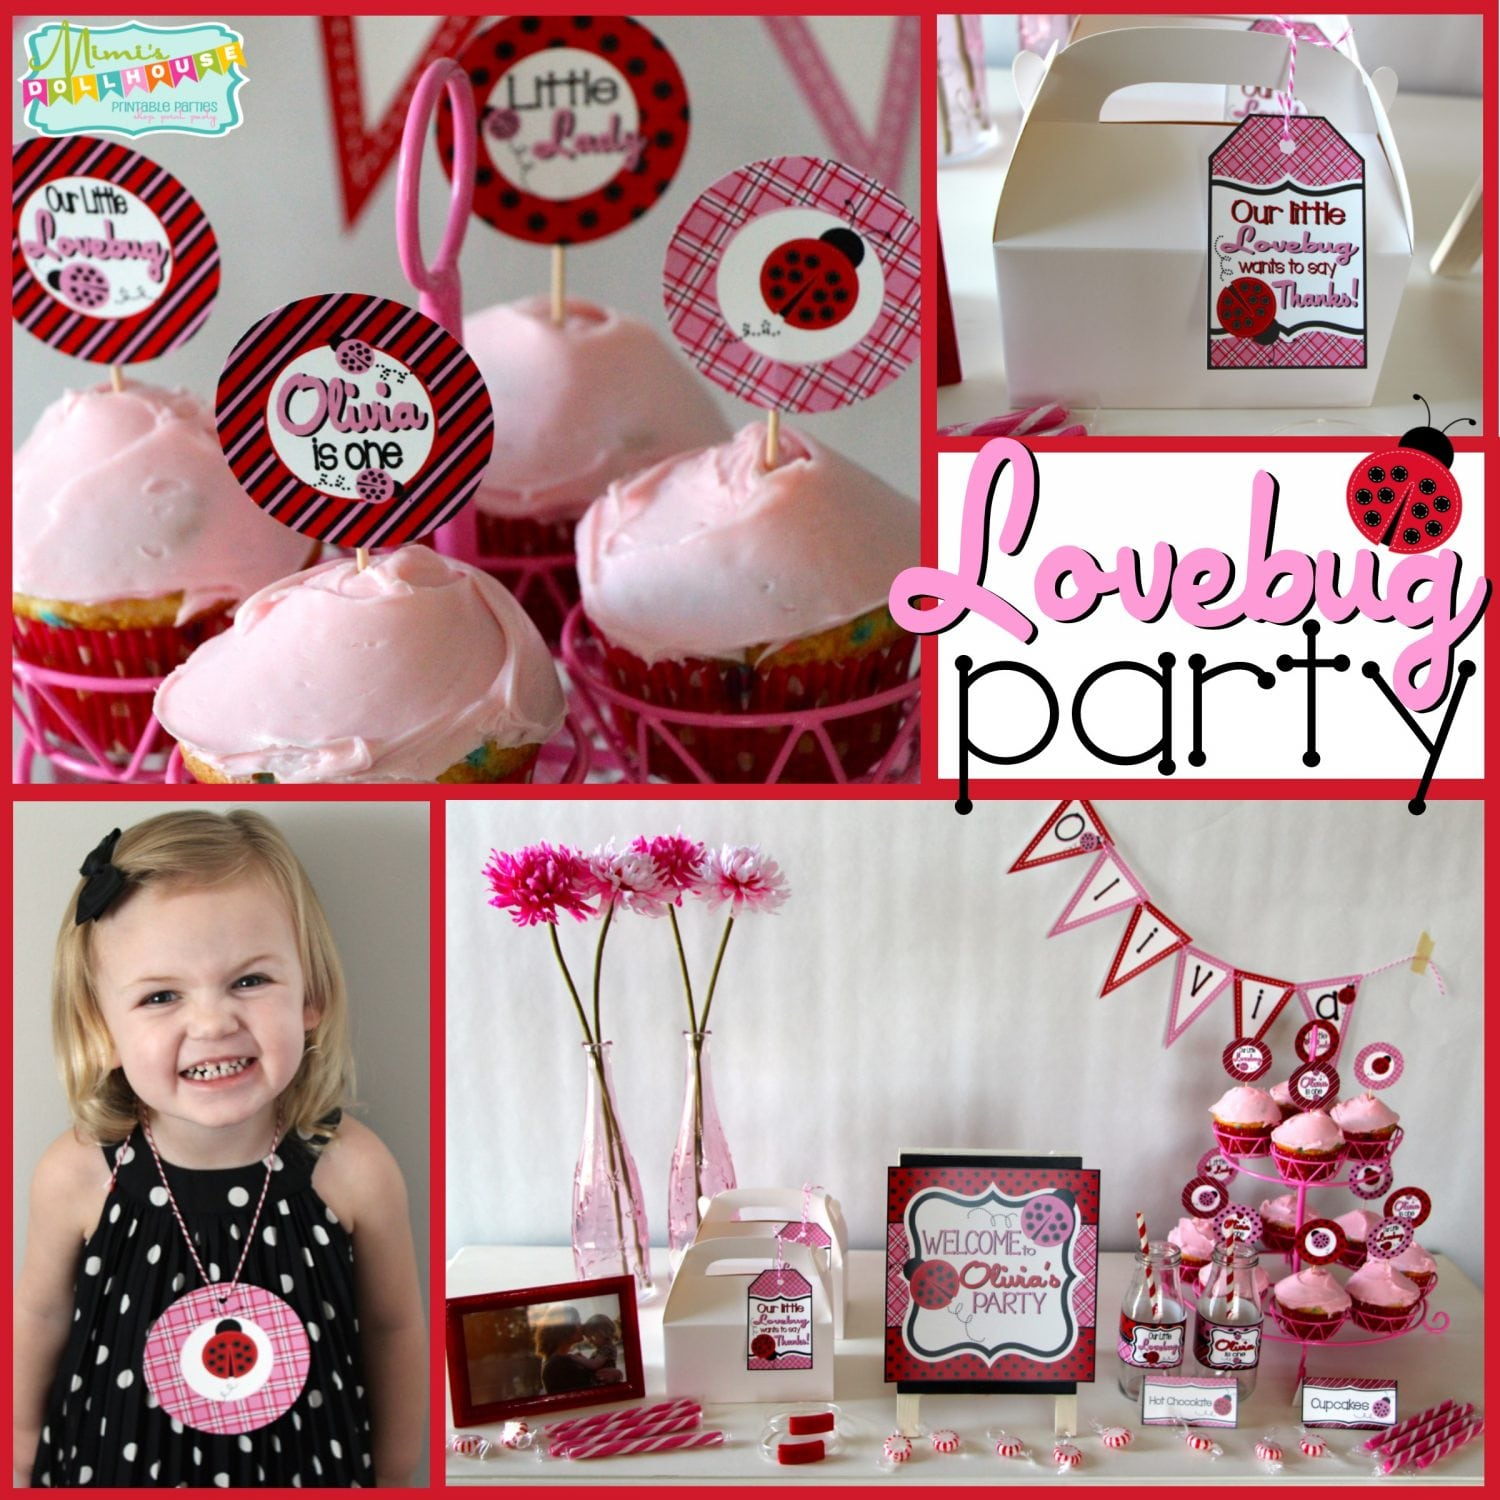 Ladybug Party: A Little Lovebug Valentine Party